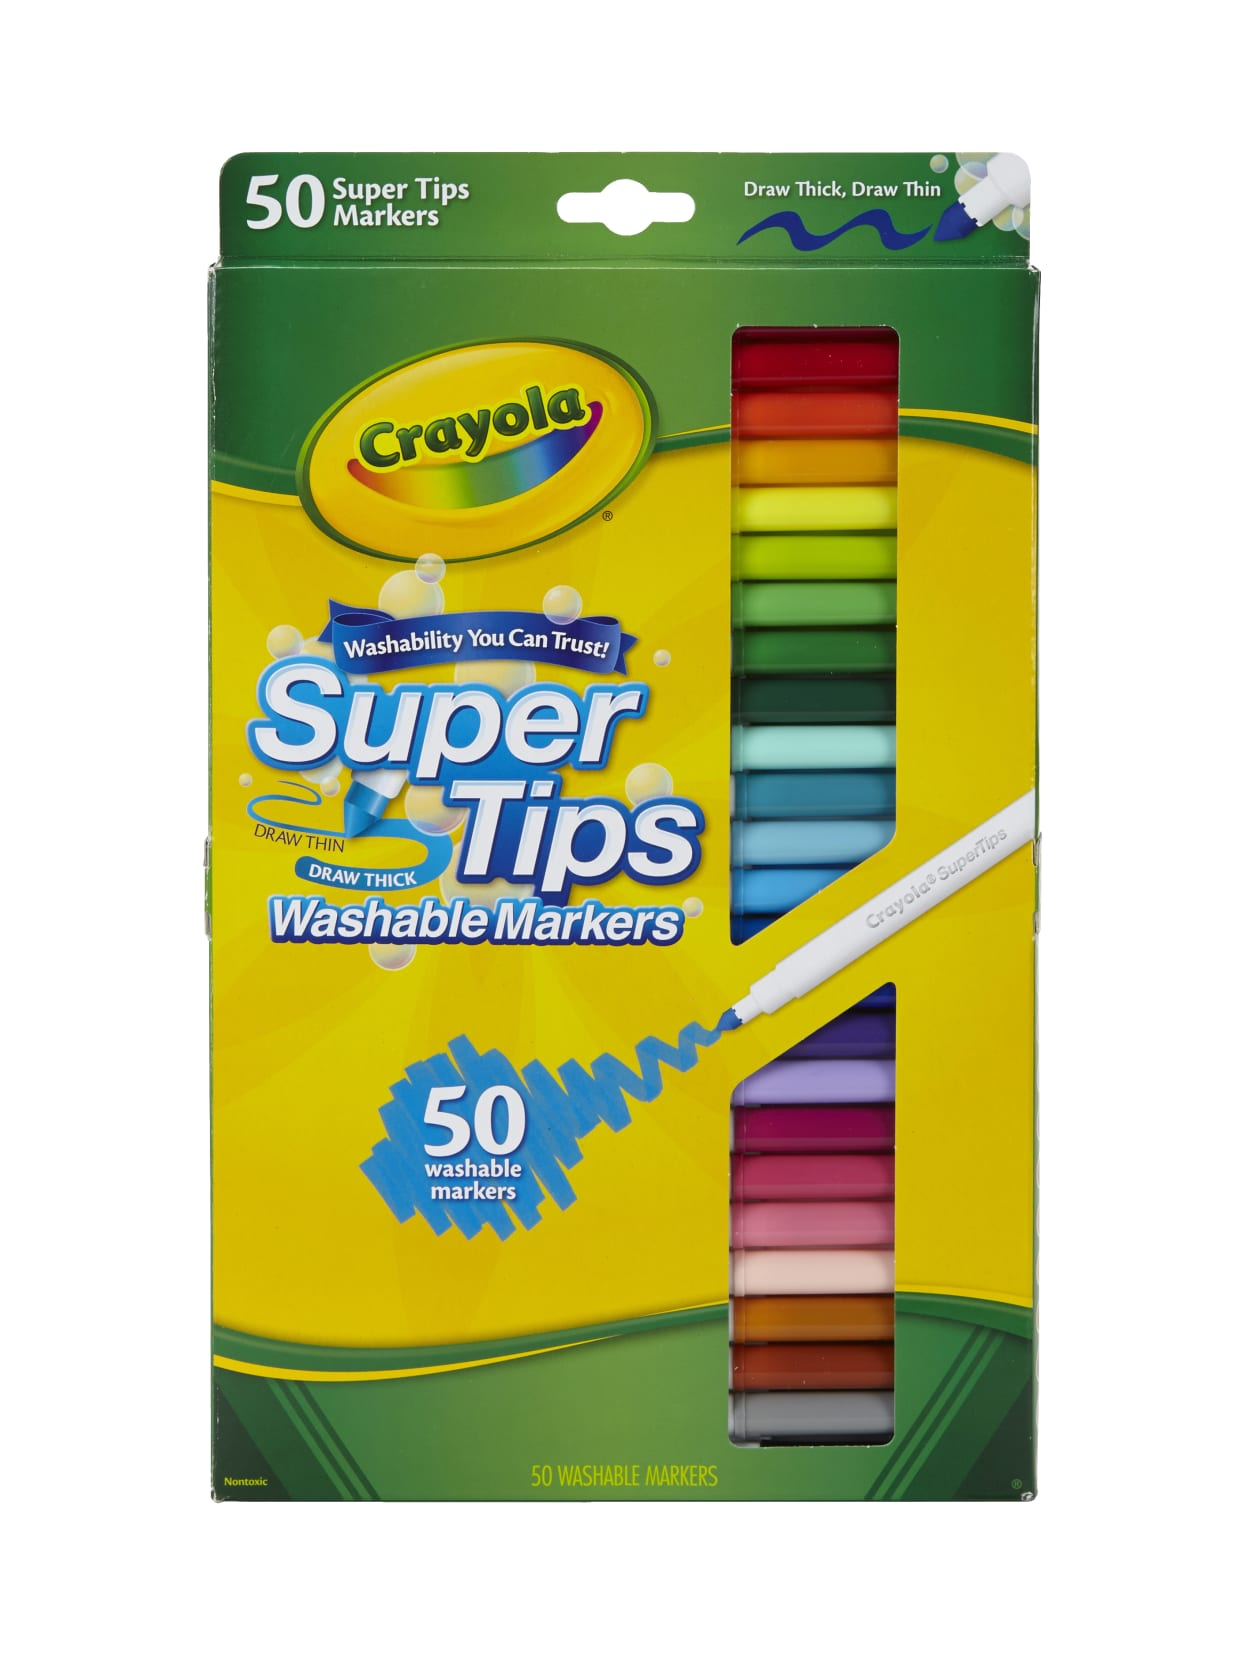 Conical Tip Markers 20 Count Crayola Thick and Thin Markers